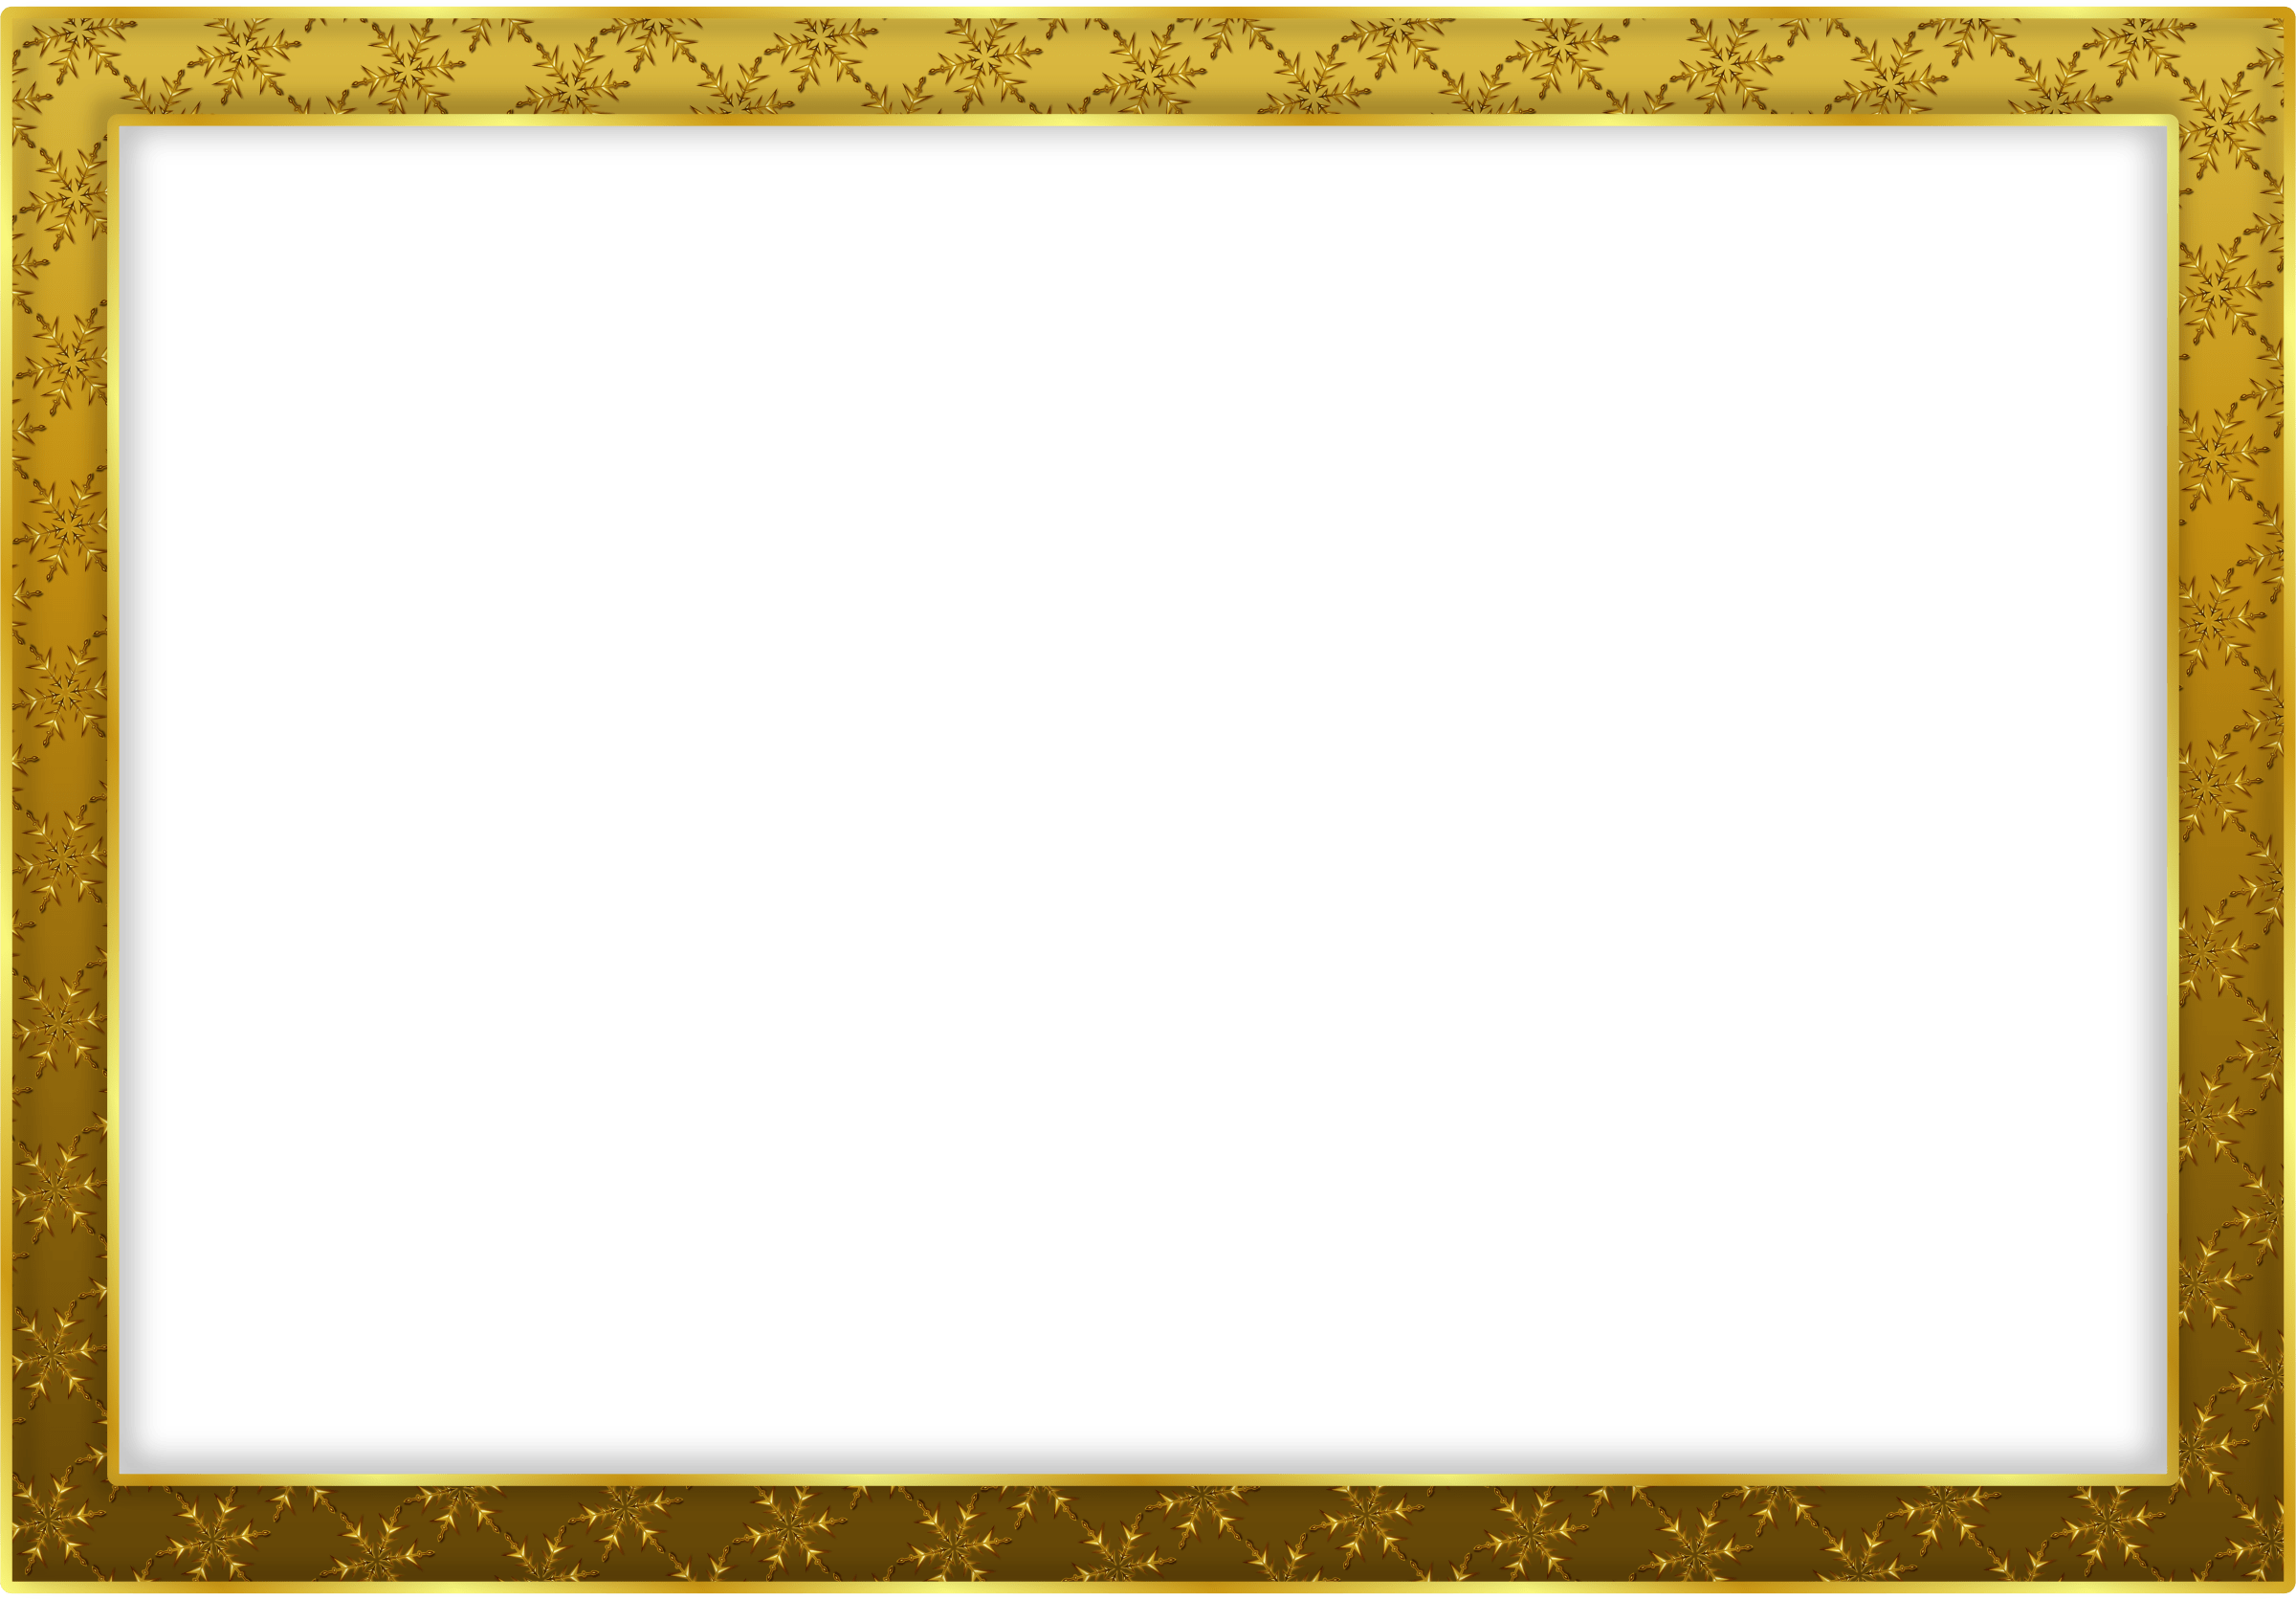 Png photo frames. Simple gold frame landscape